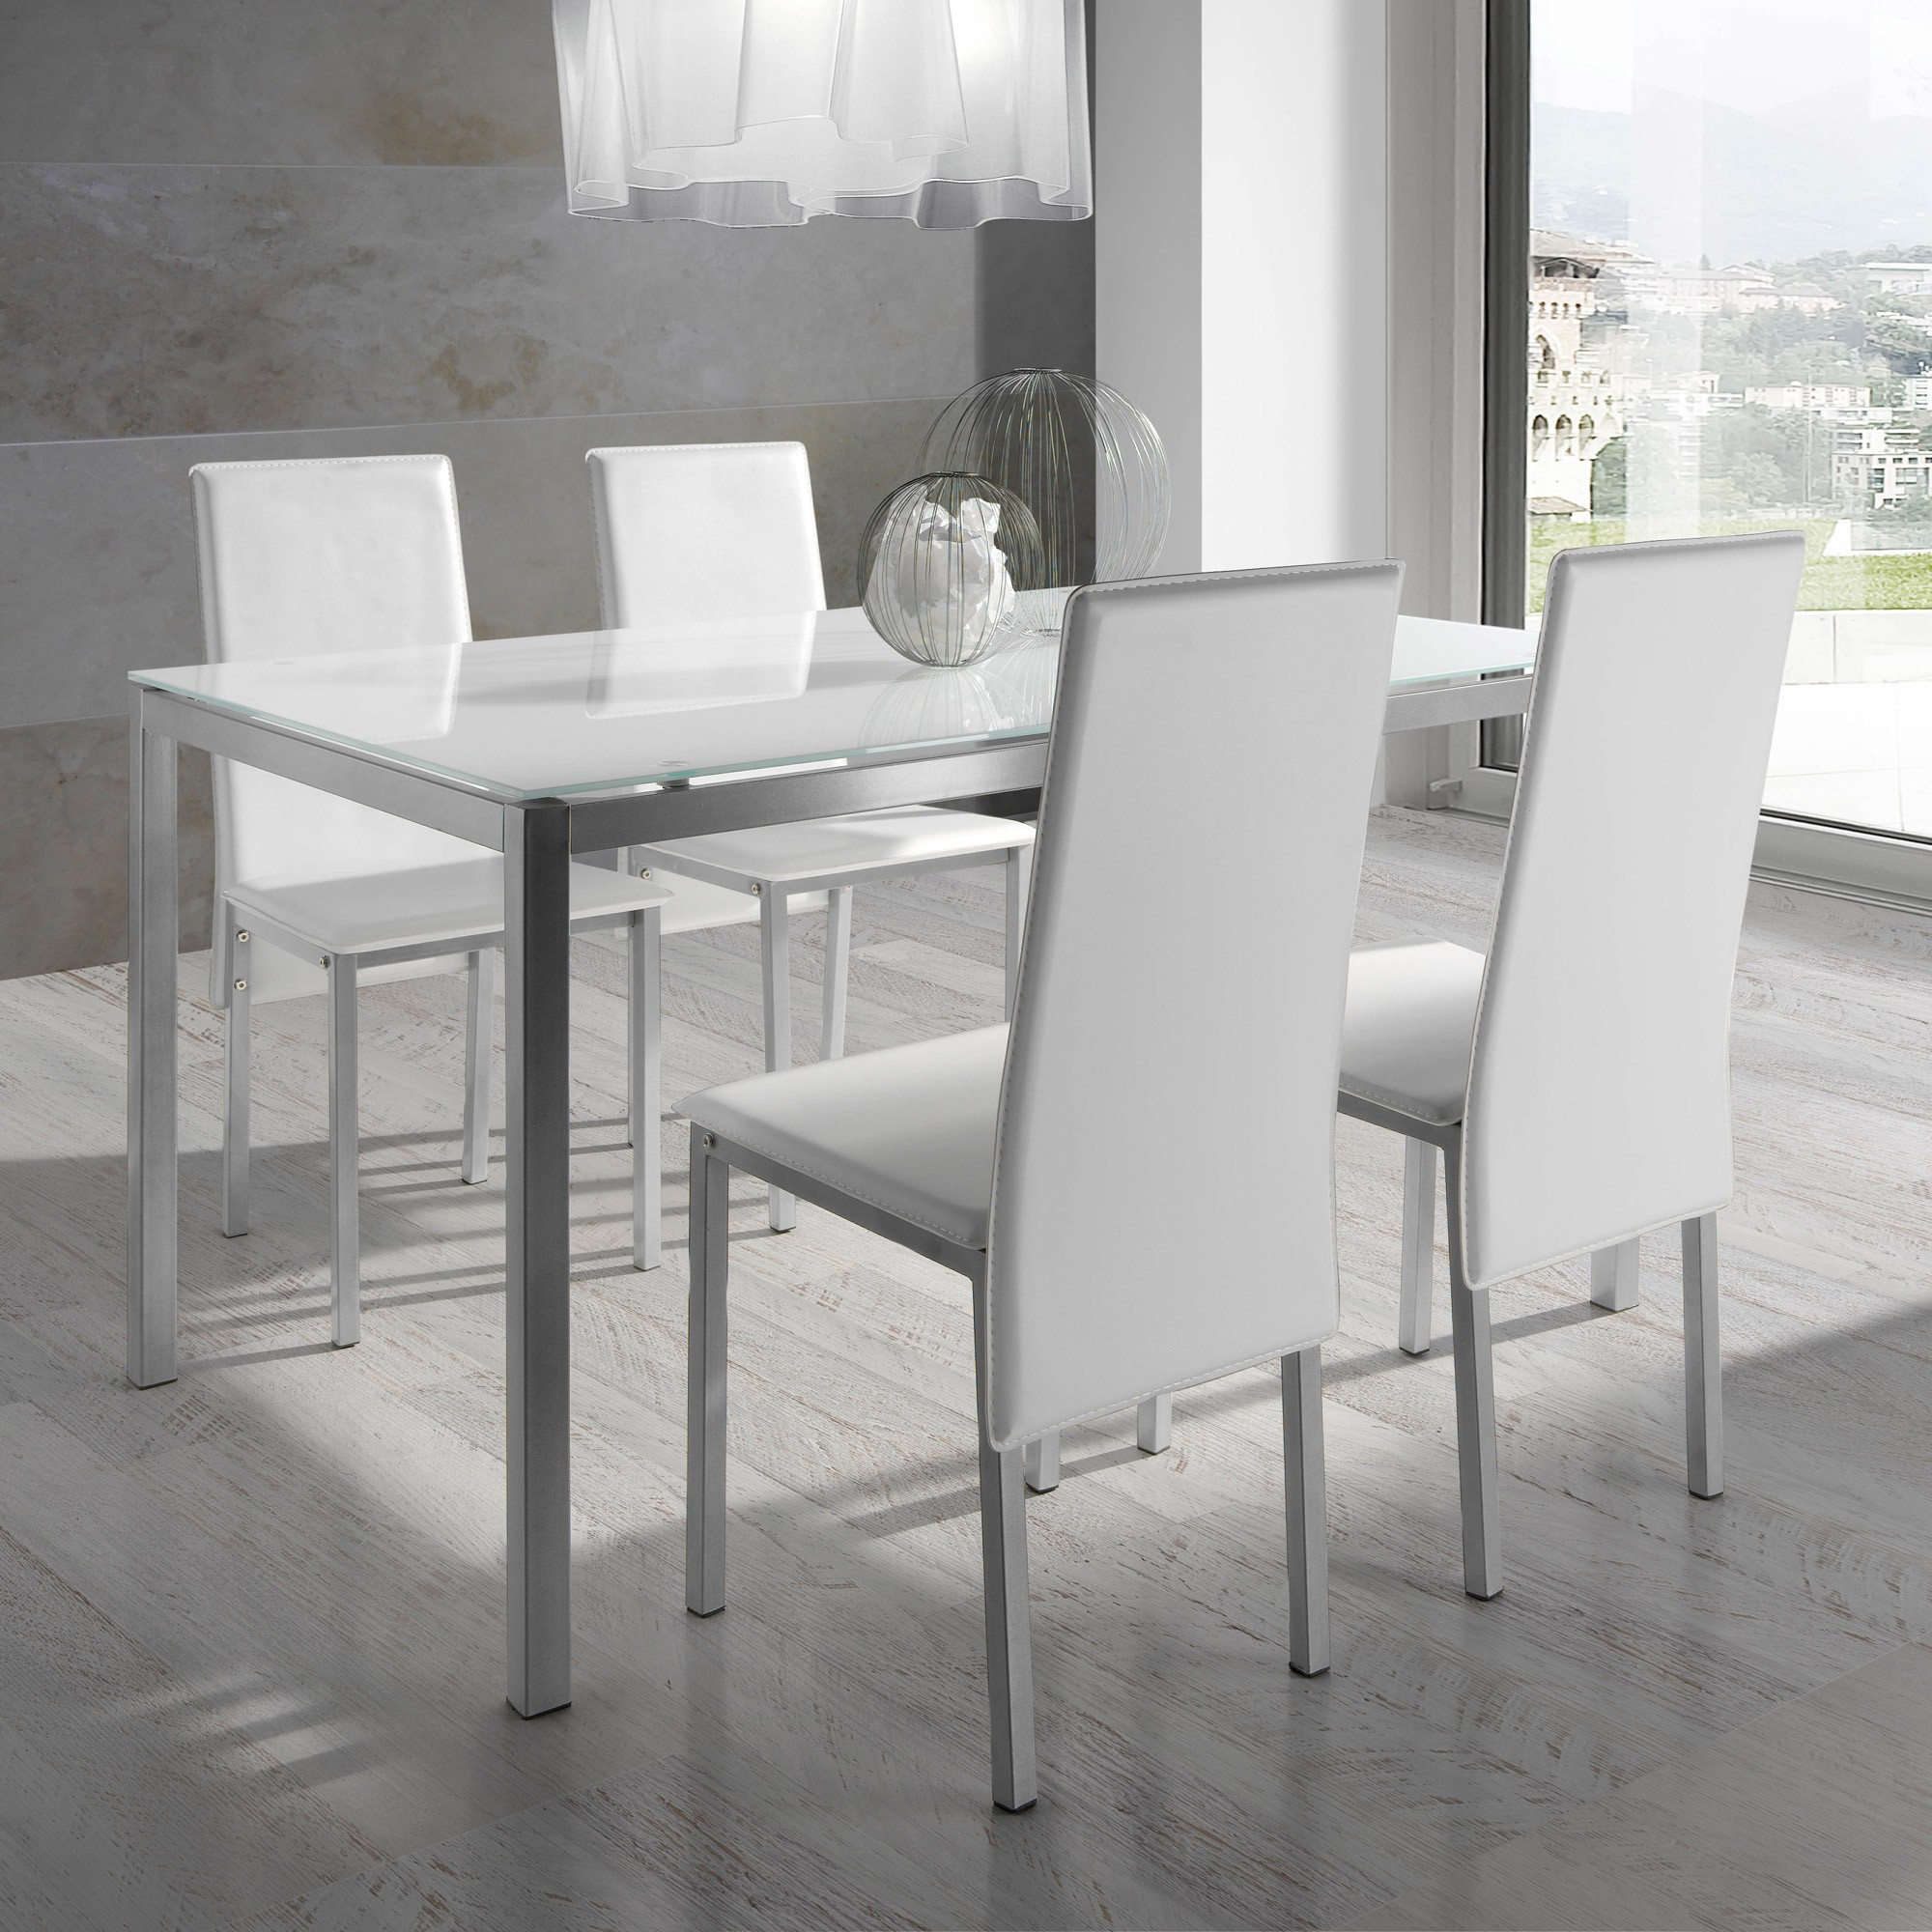 Ensemble table et chaise salle a manger but chaise for Table et chaise conforama